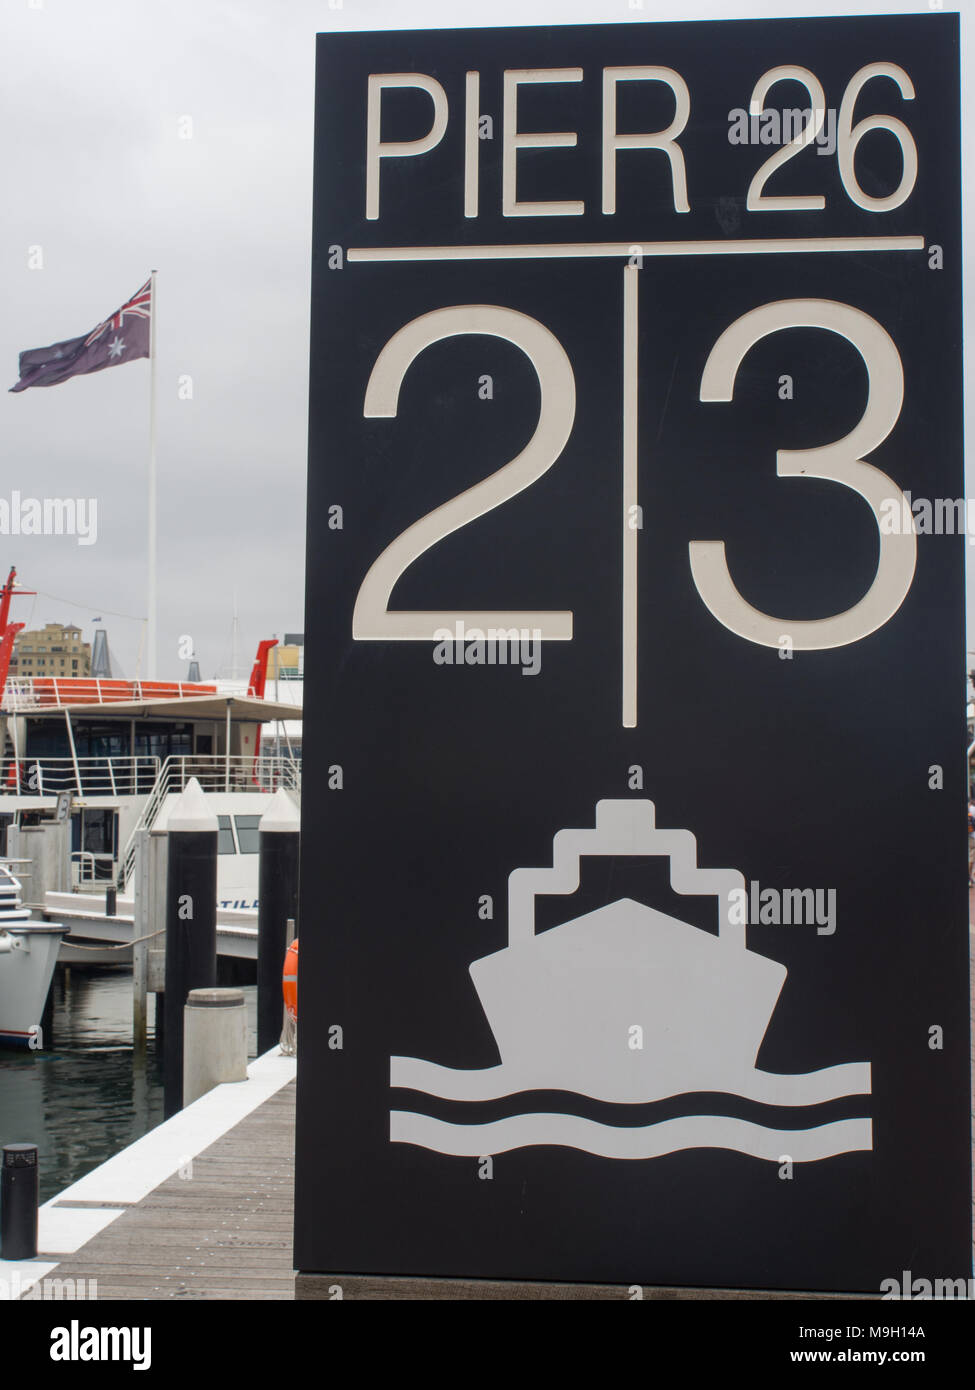 Pier 26 Darling Harbour - Stock Image